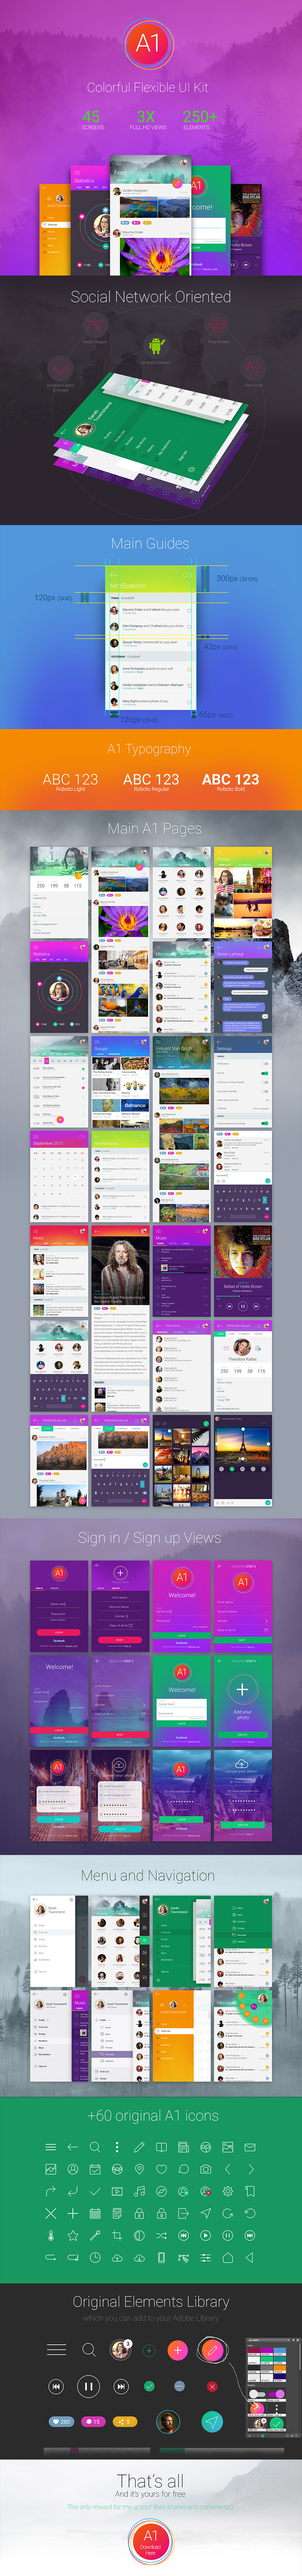 A1 Social App Design UI Kit - Social Oriented PSD Freebie